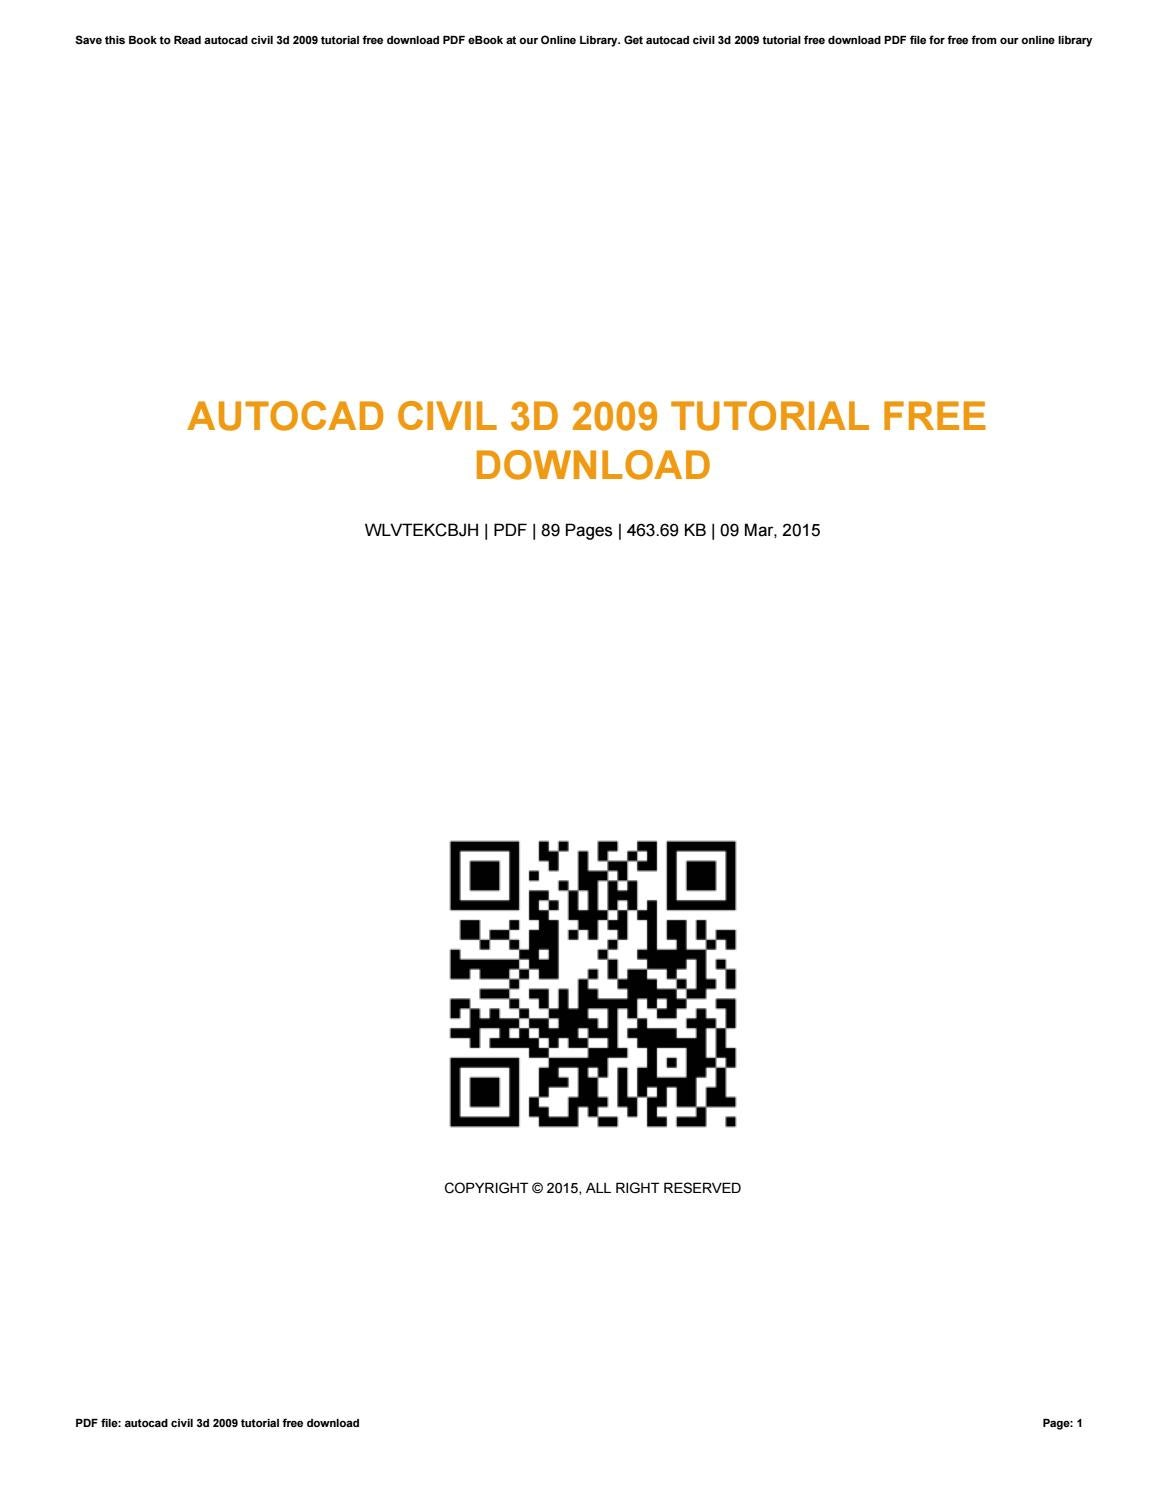 Autocad civil 3d 2009 tutorial free download by